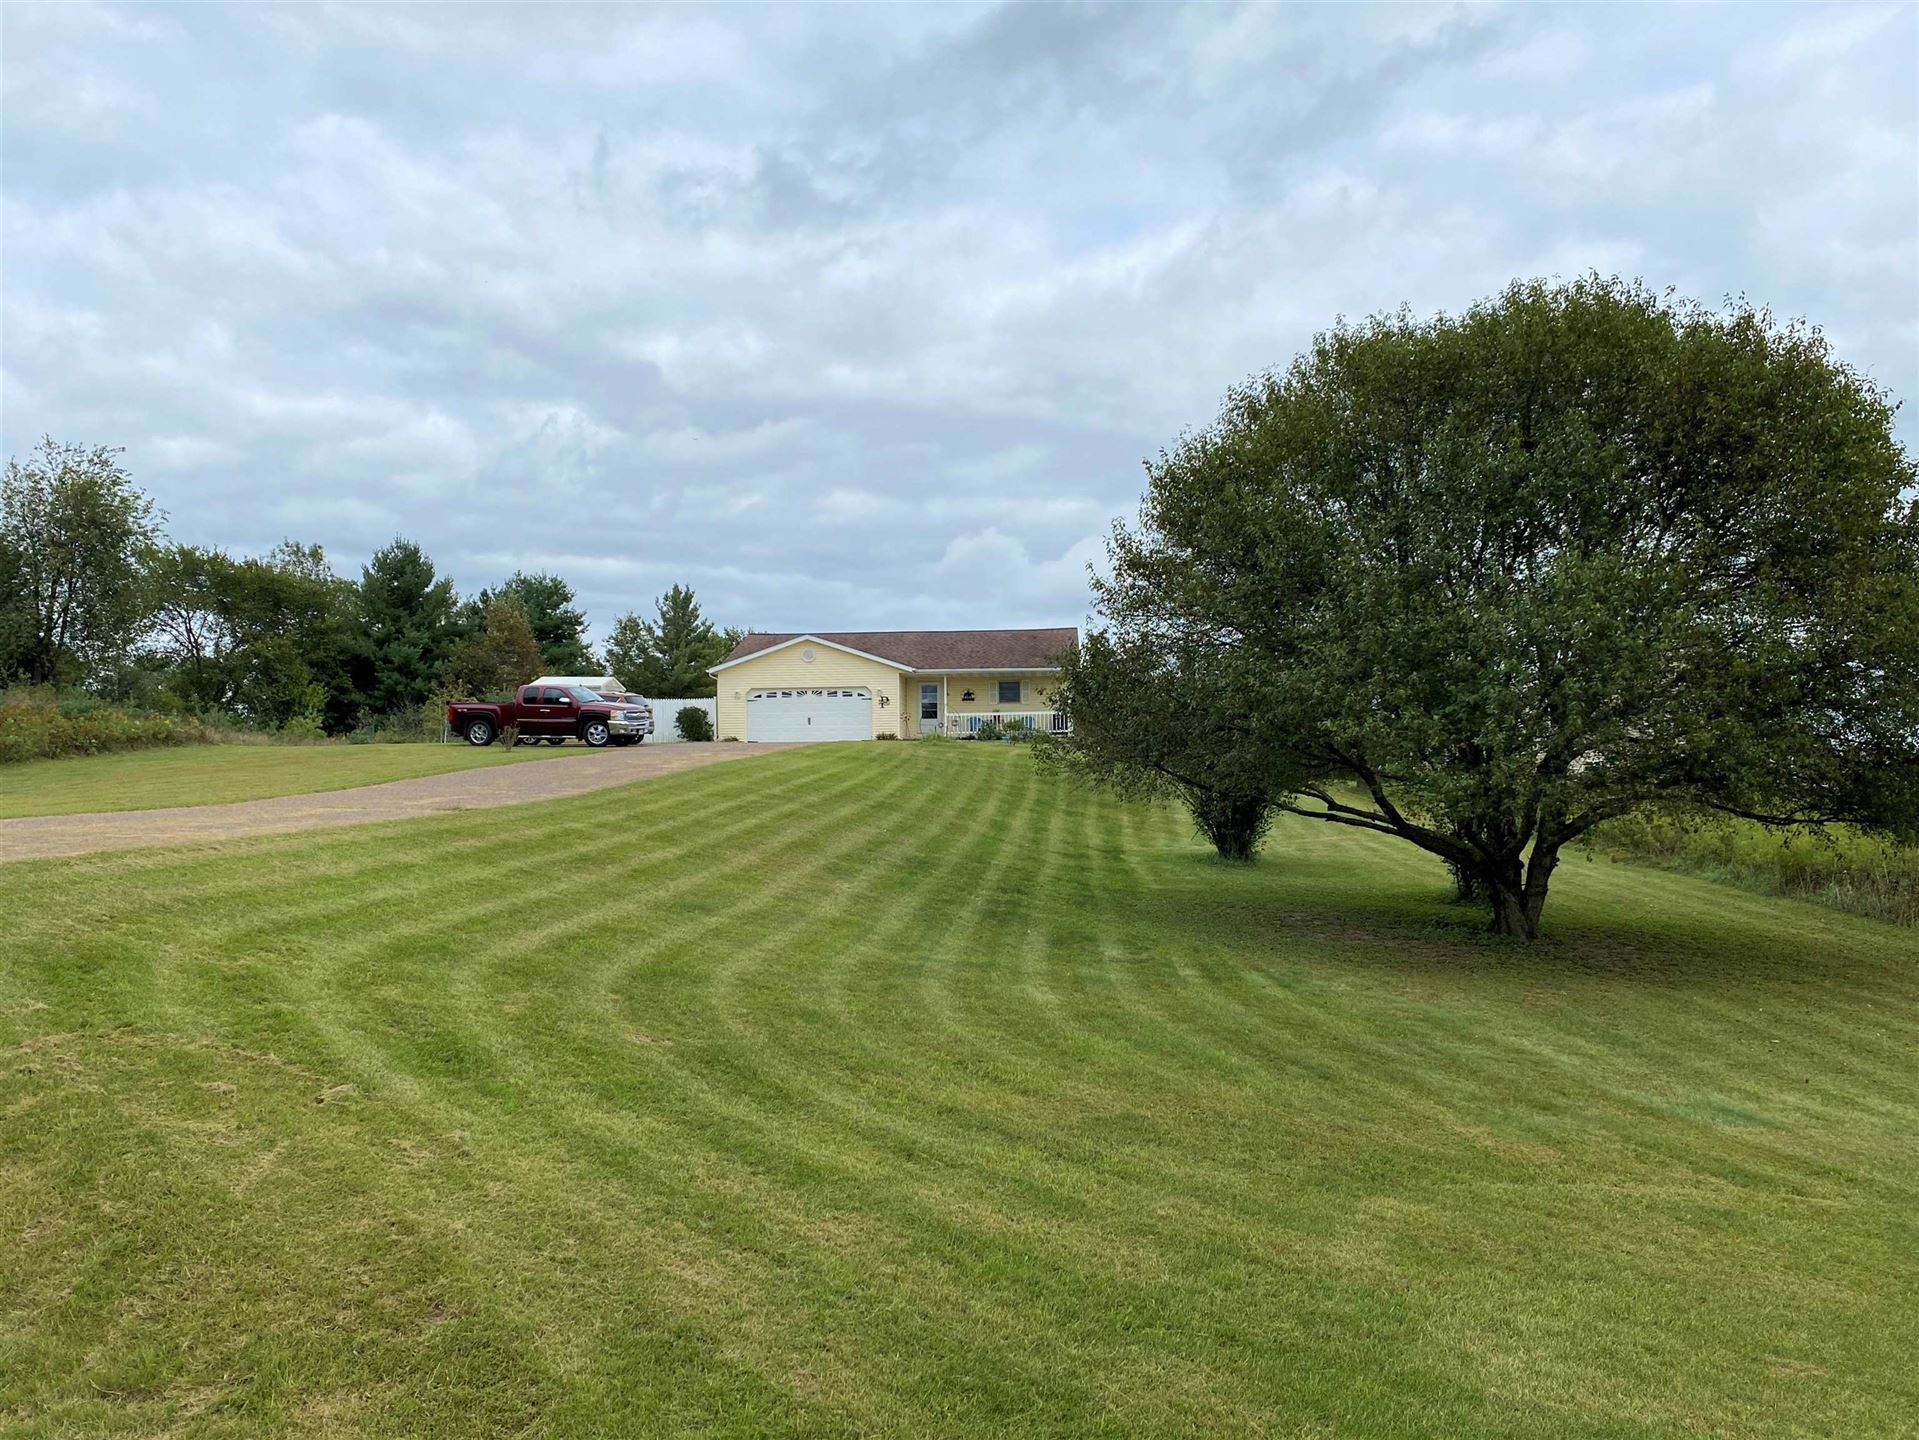 11670 Flower Rd, Tomah, WI 54660 - #: 1919810